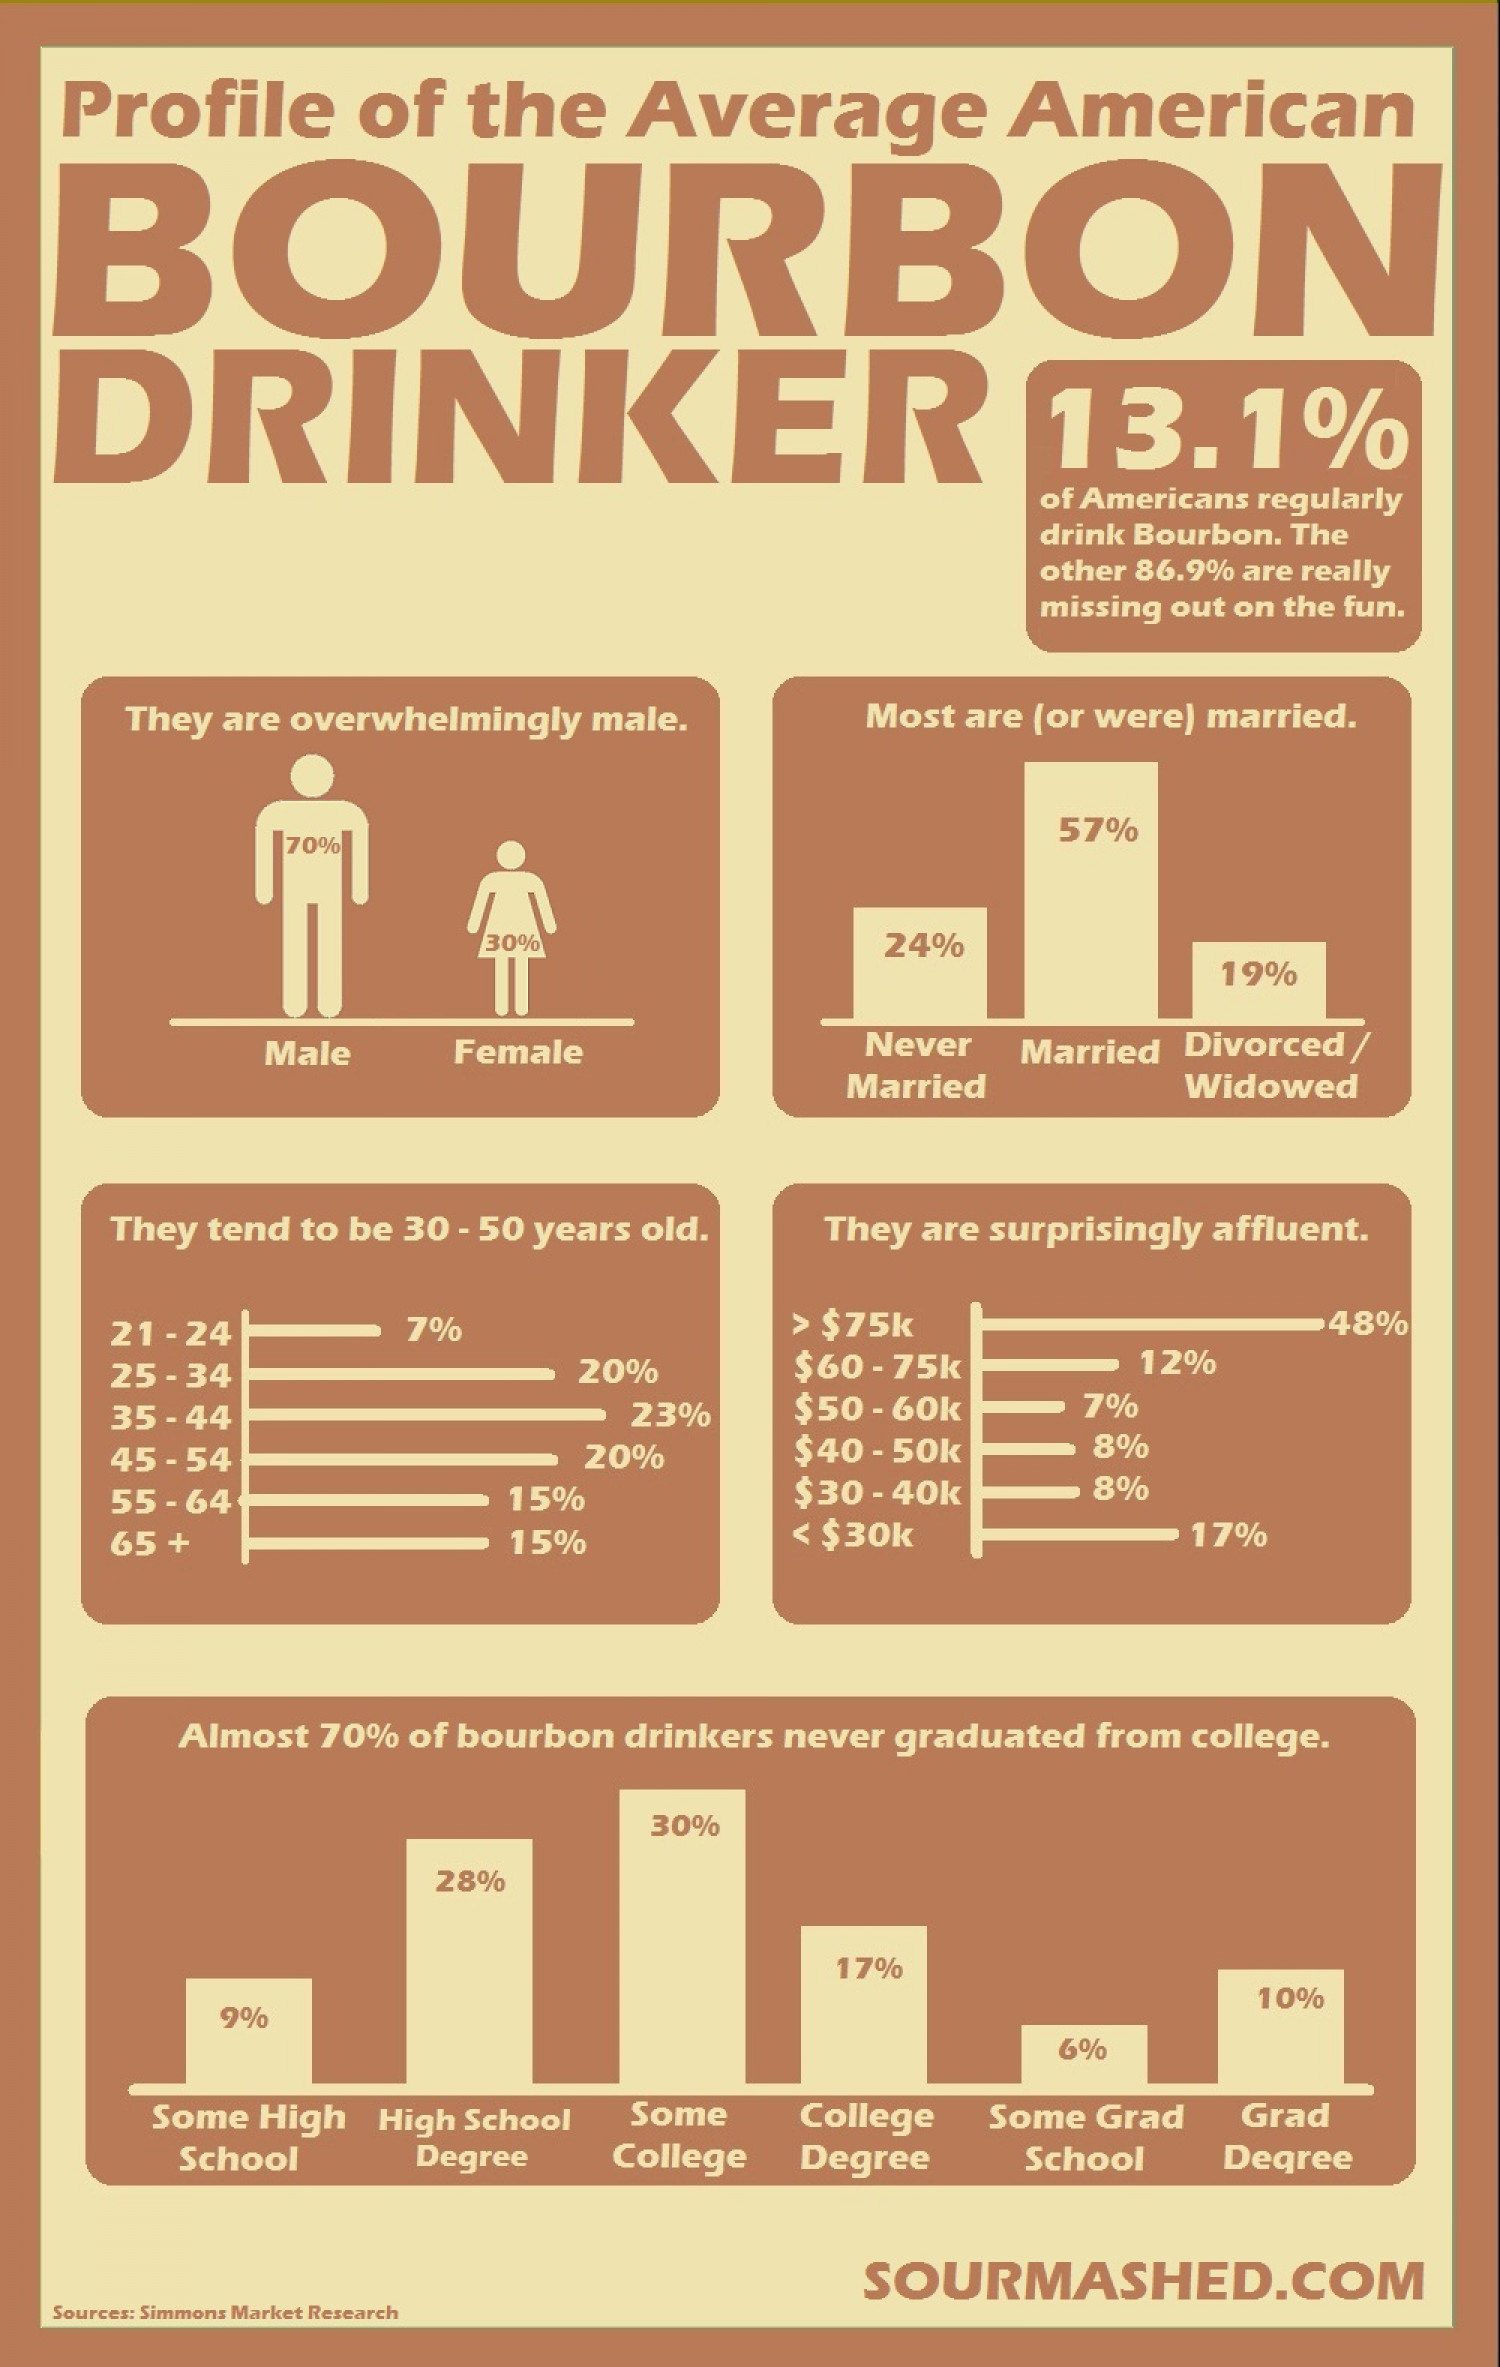 Profile of the Average American Bourbon Drinker Infographic